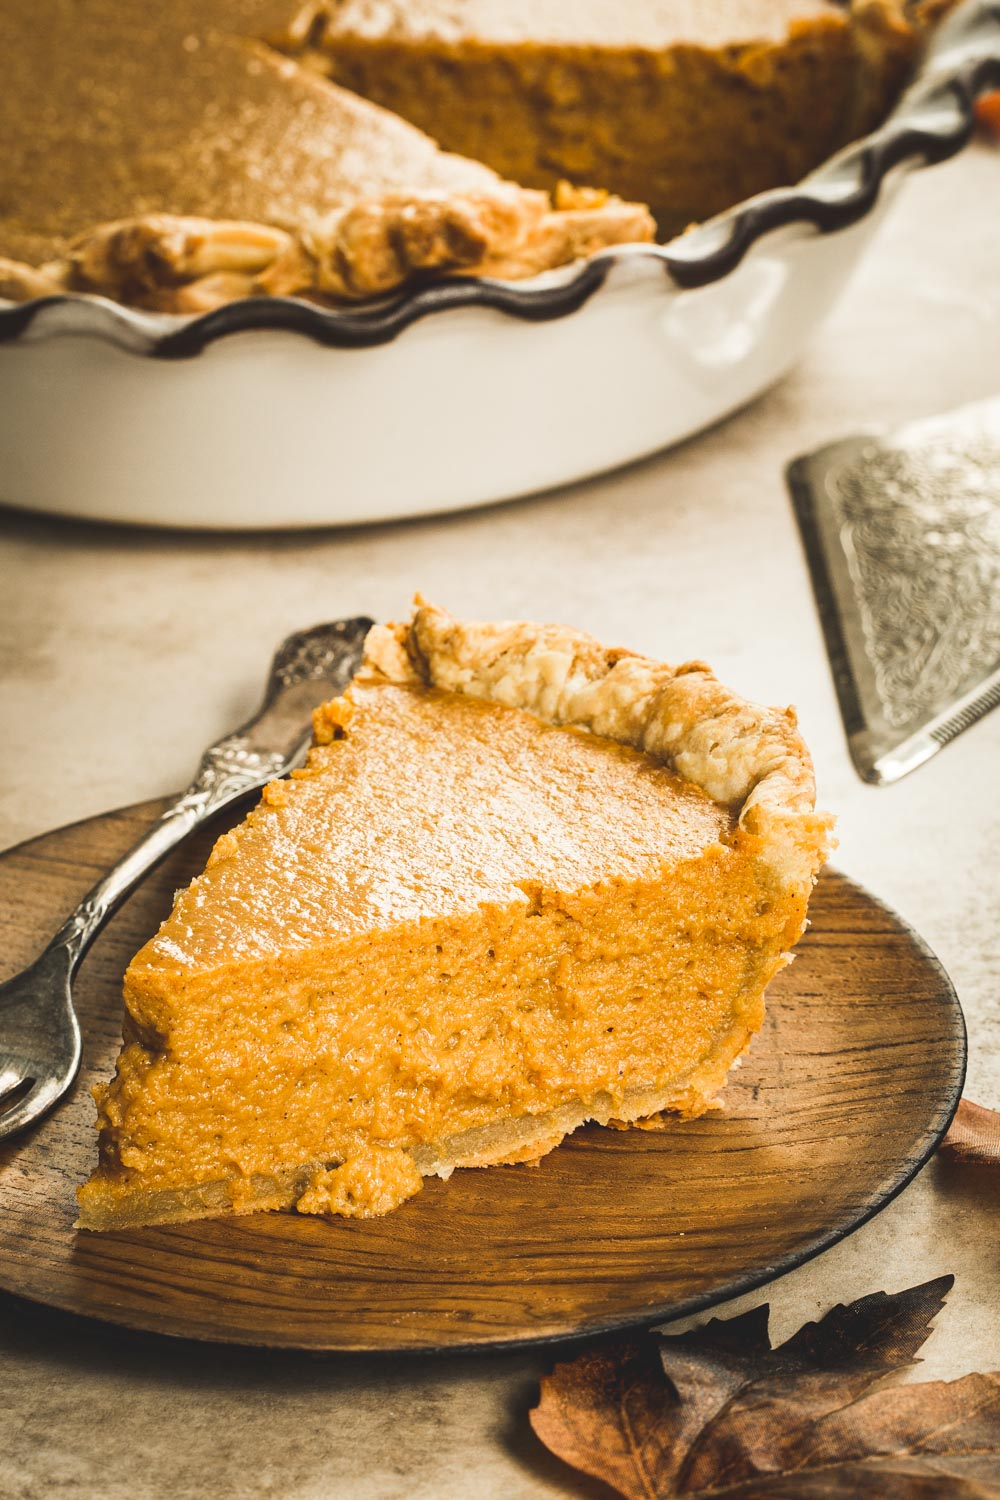 Maple pumpkin pie slice on a wooden plate with a silver fork.